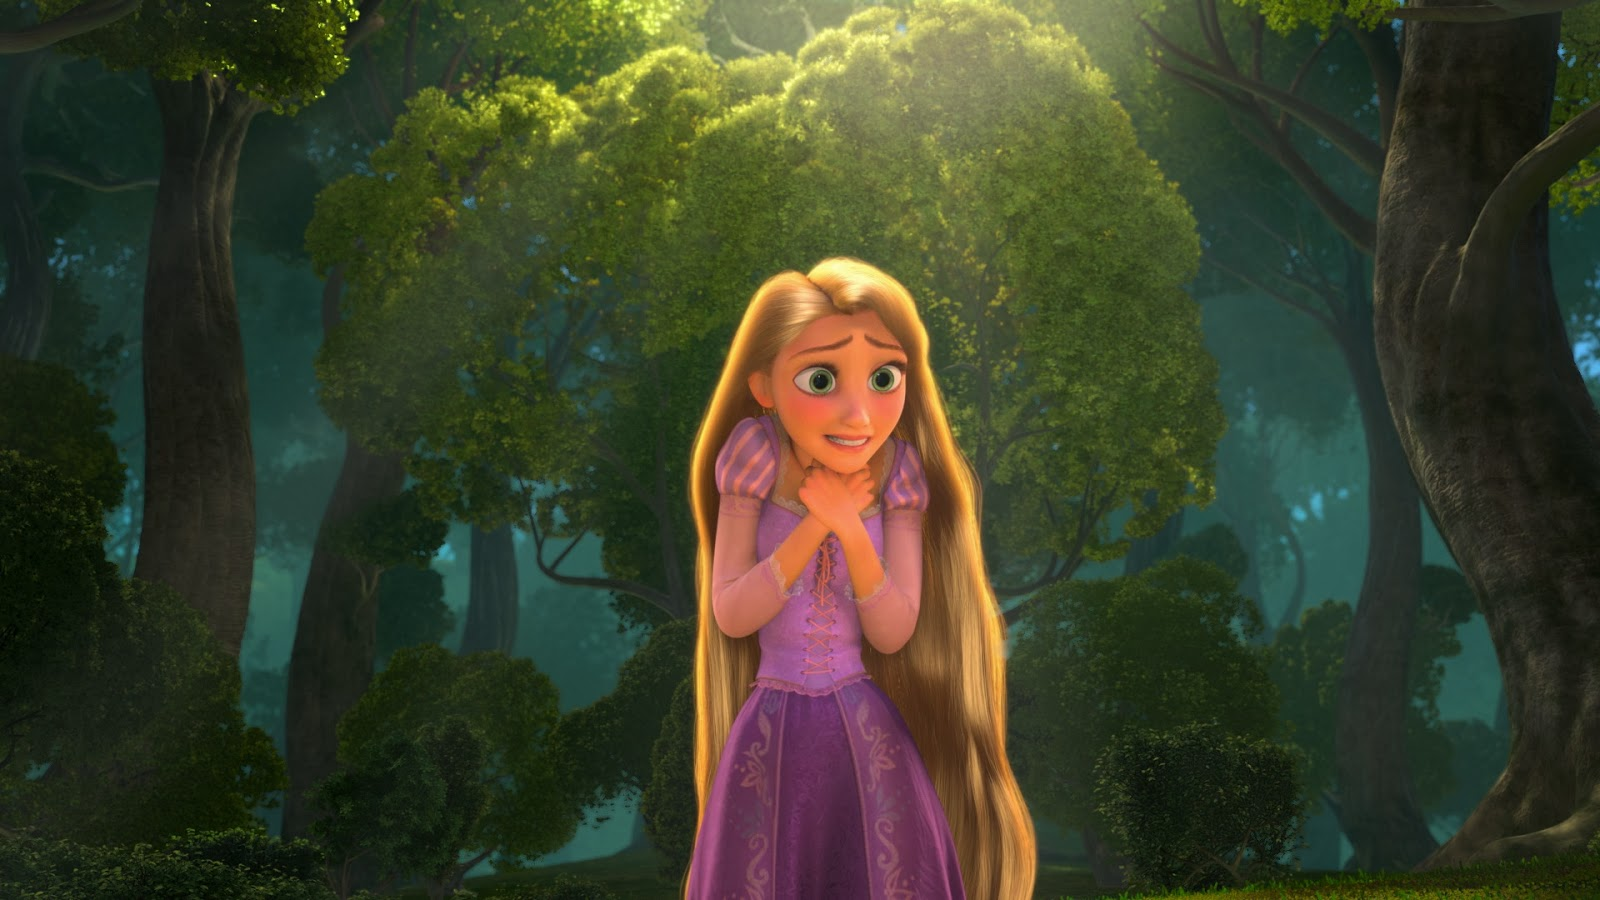 Princess Rapunzel Mickey Mouse Pictures